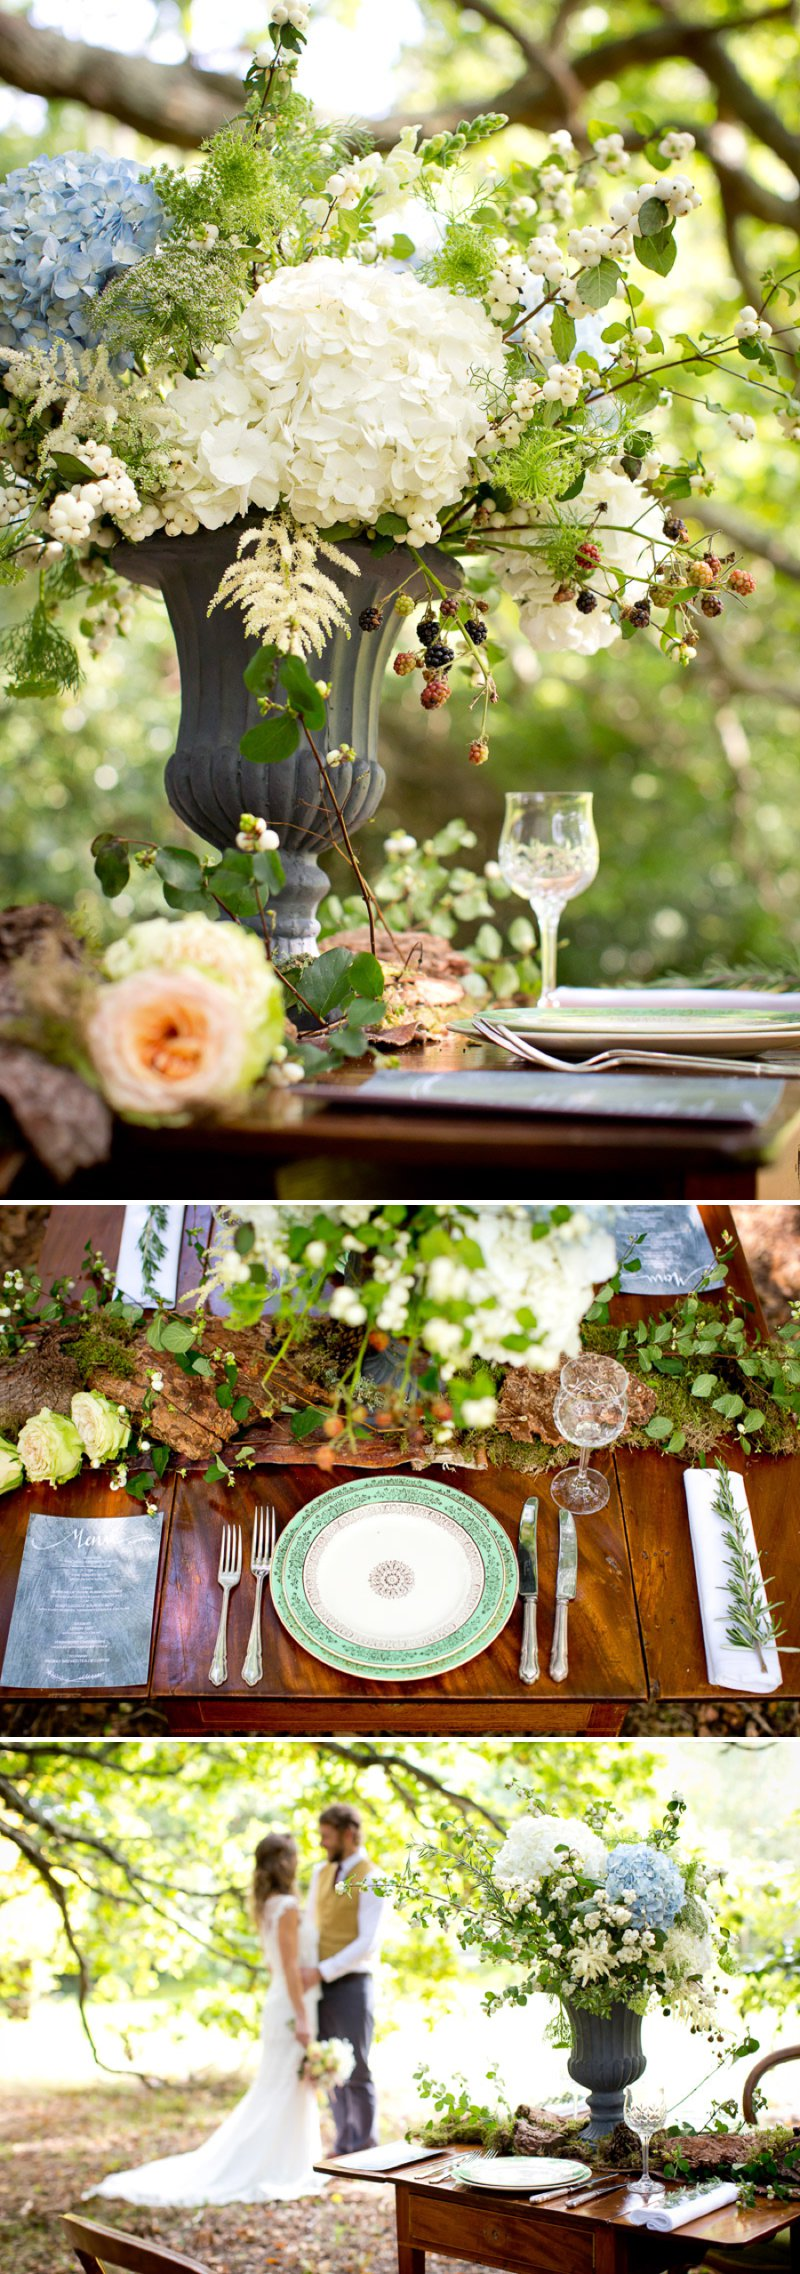 A Pretty Romantic Inspiration Shoot Styled By Sweet Dream Events Showcasing Outdoor Wedding Venues In The New Forest From Cottonwood Weddings With Images From Carrie Bugg Photography 1 If You Go Down To The Woods.